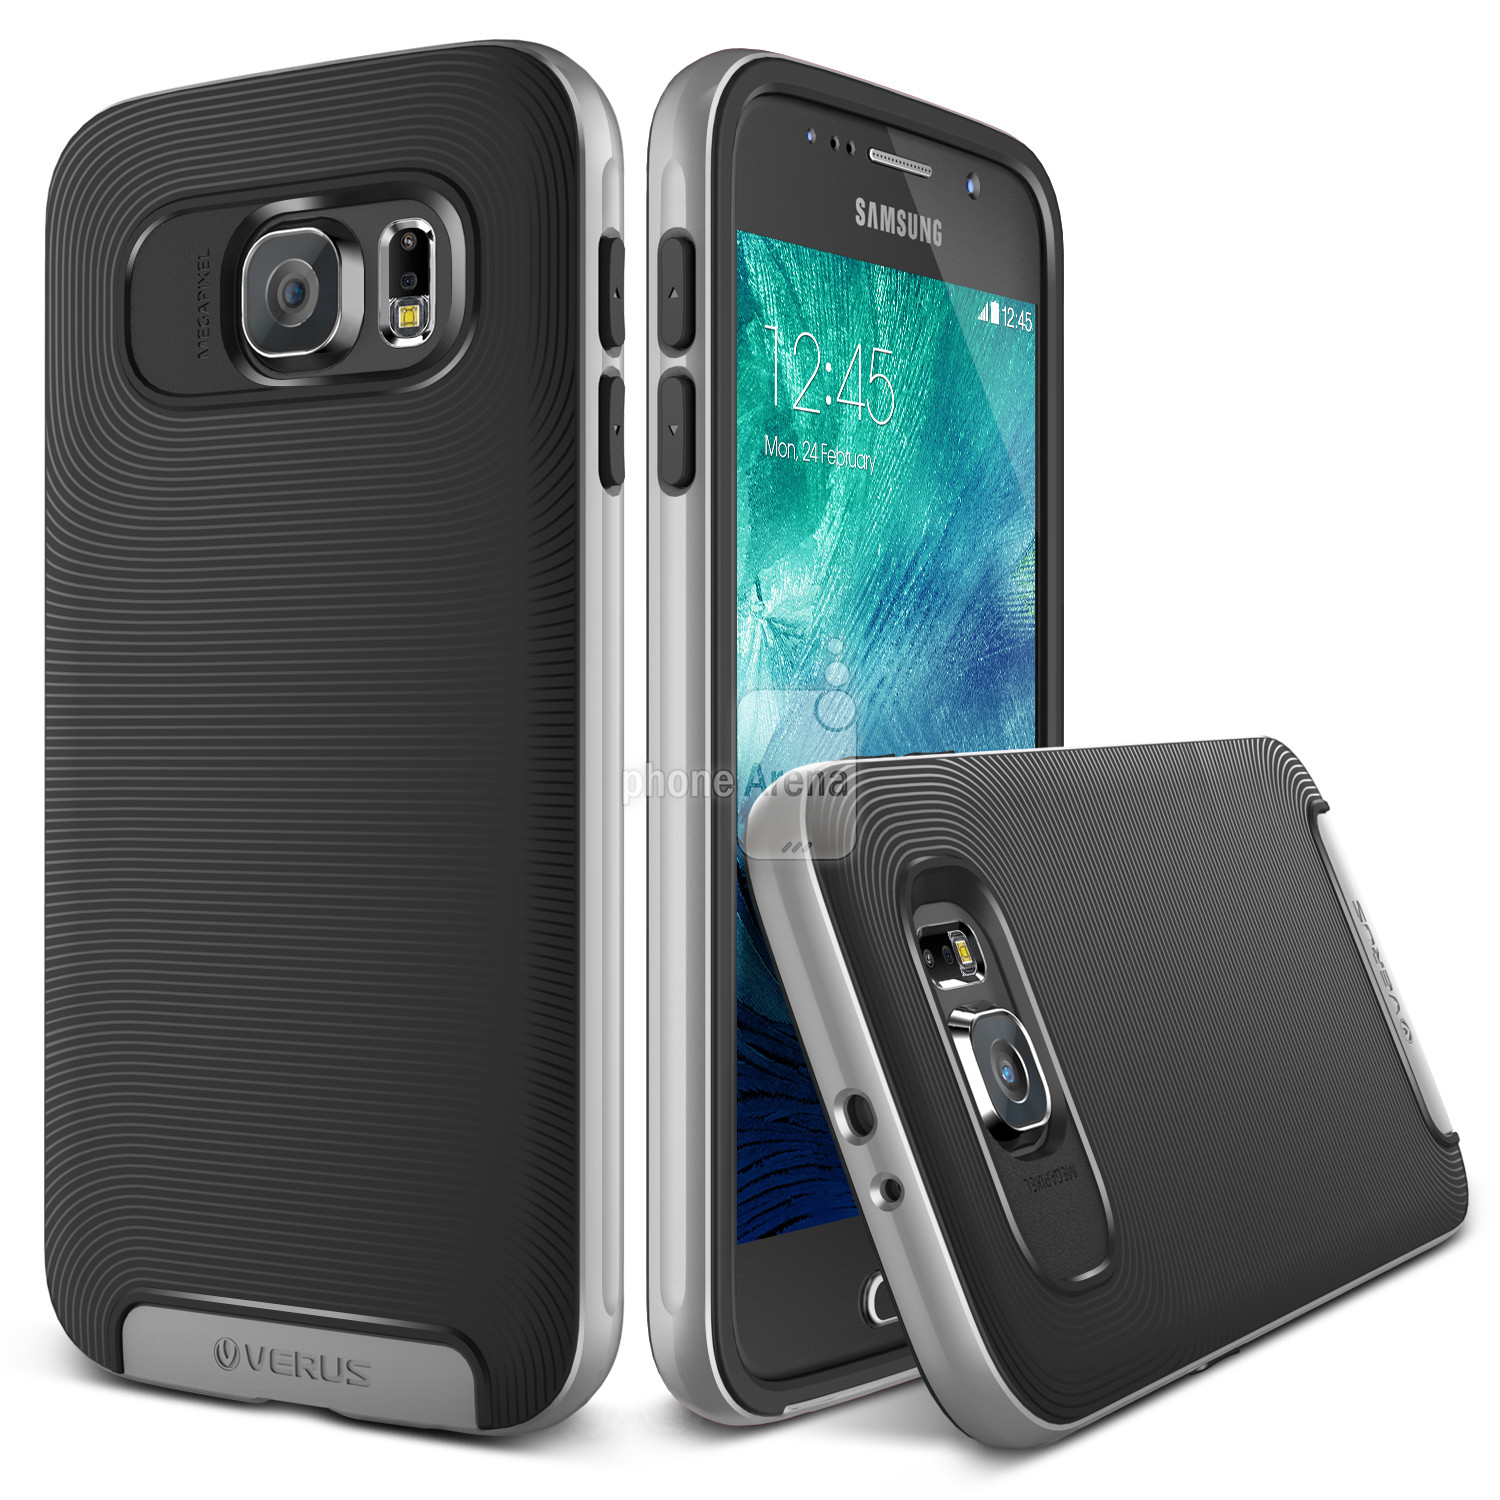 Galaxy S6 Otterbox: Realistic Galaxy S6 Rendering In Actual Dimensions Leaked